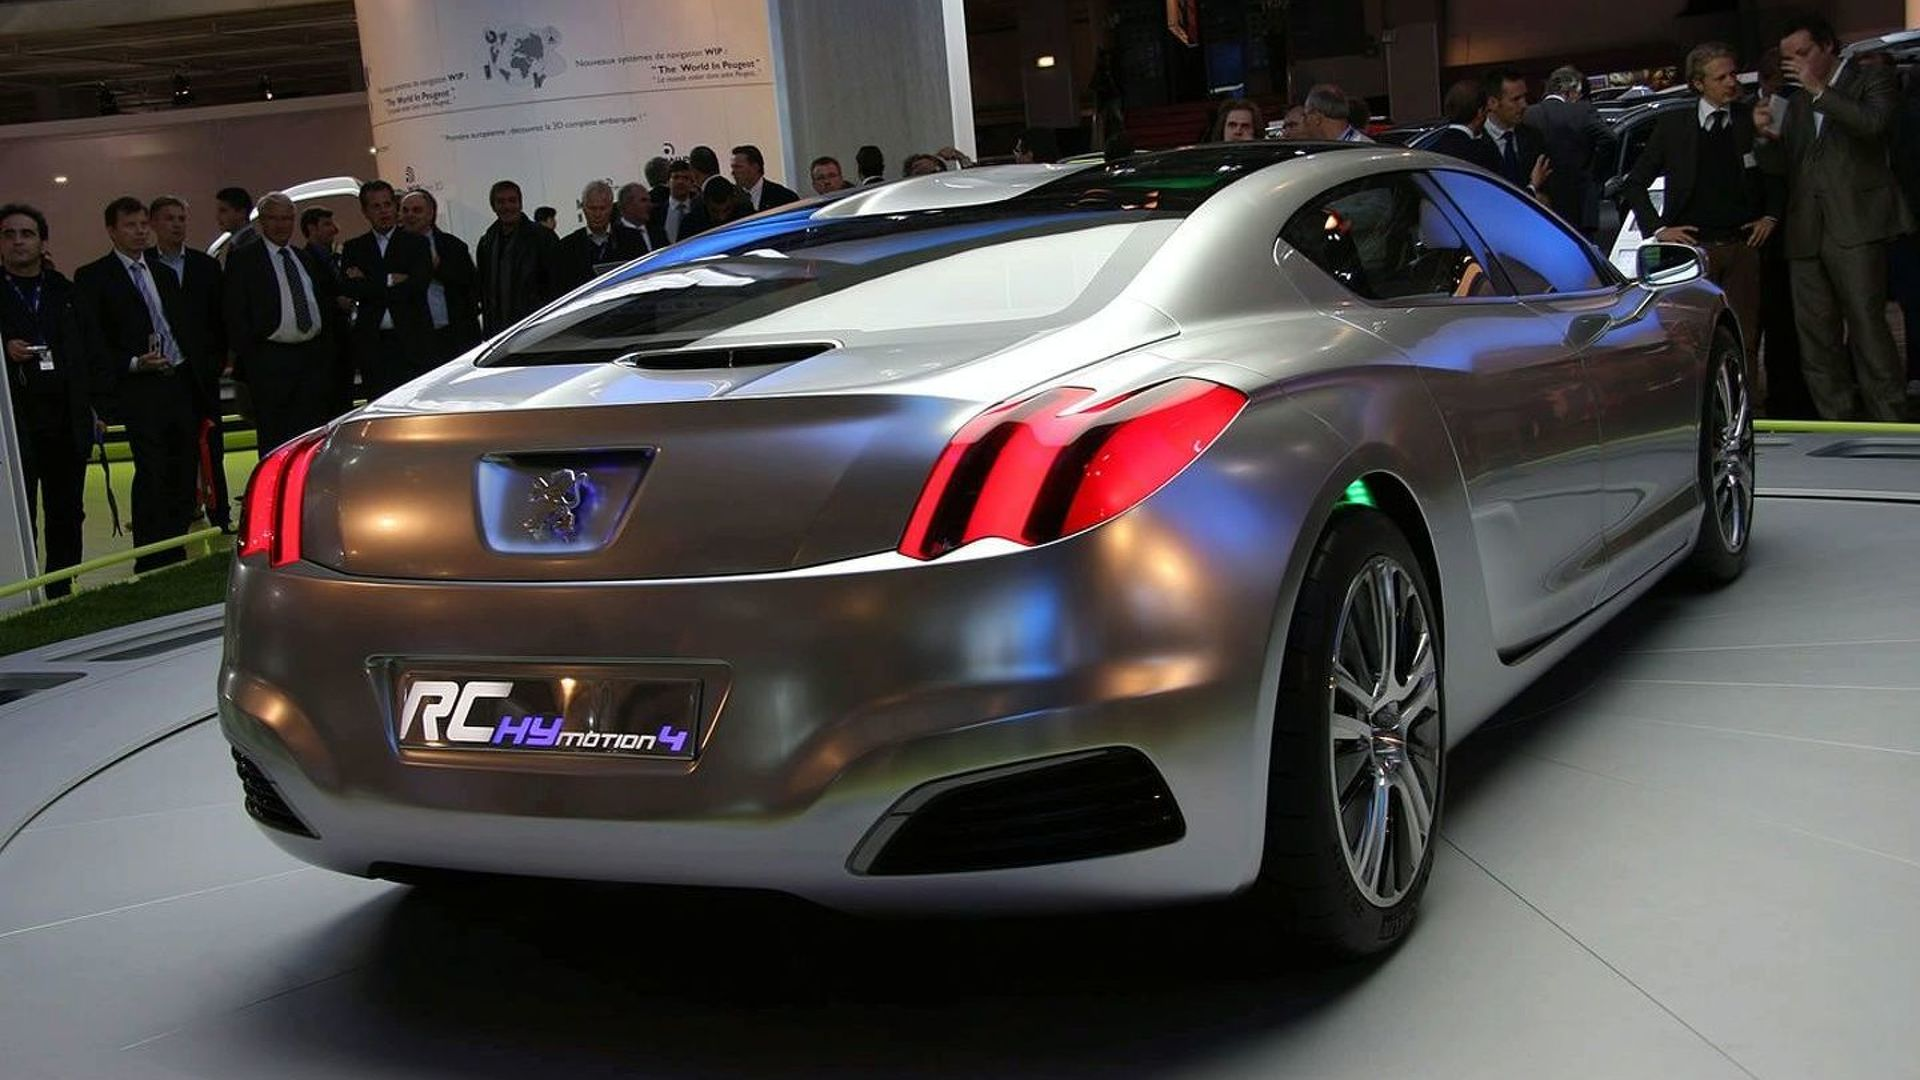 2008-714-peugeot-rc-hymotion4-concept-in-paris1.jpg